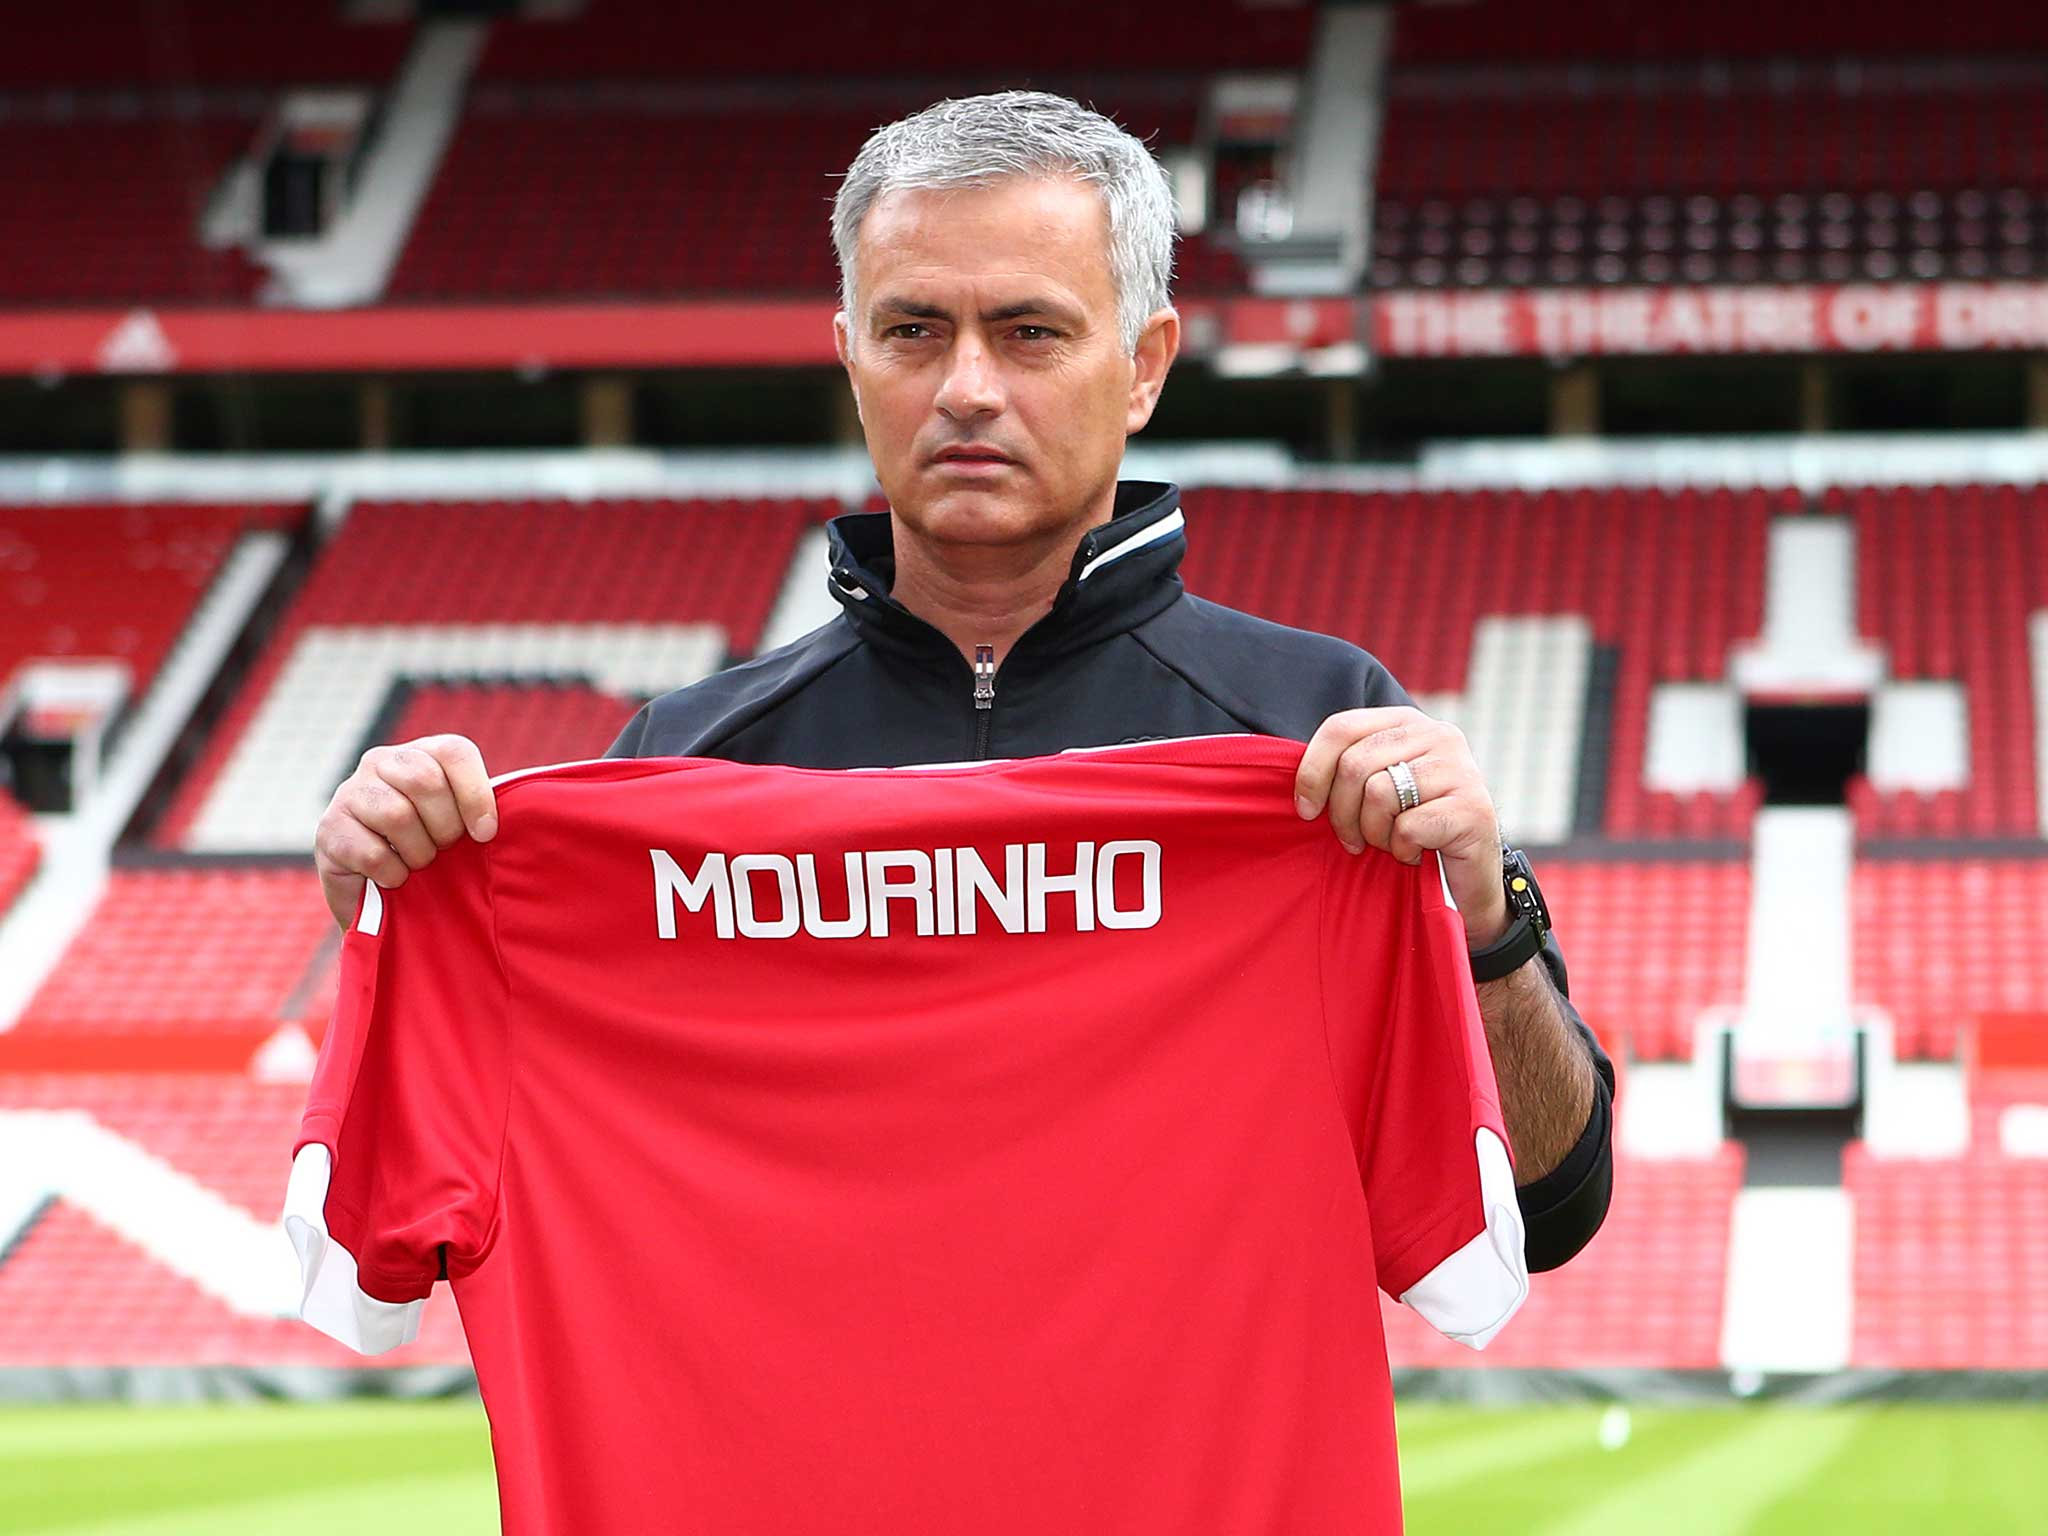 Jose Mourinho press conference: Ryan Giggs 'wanted to be Manchester United manager,' says former Chelsea boss